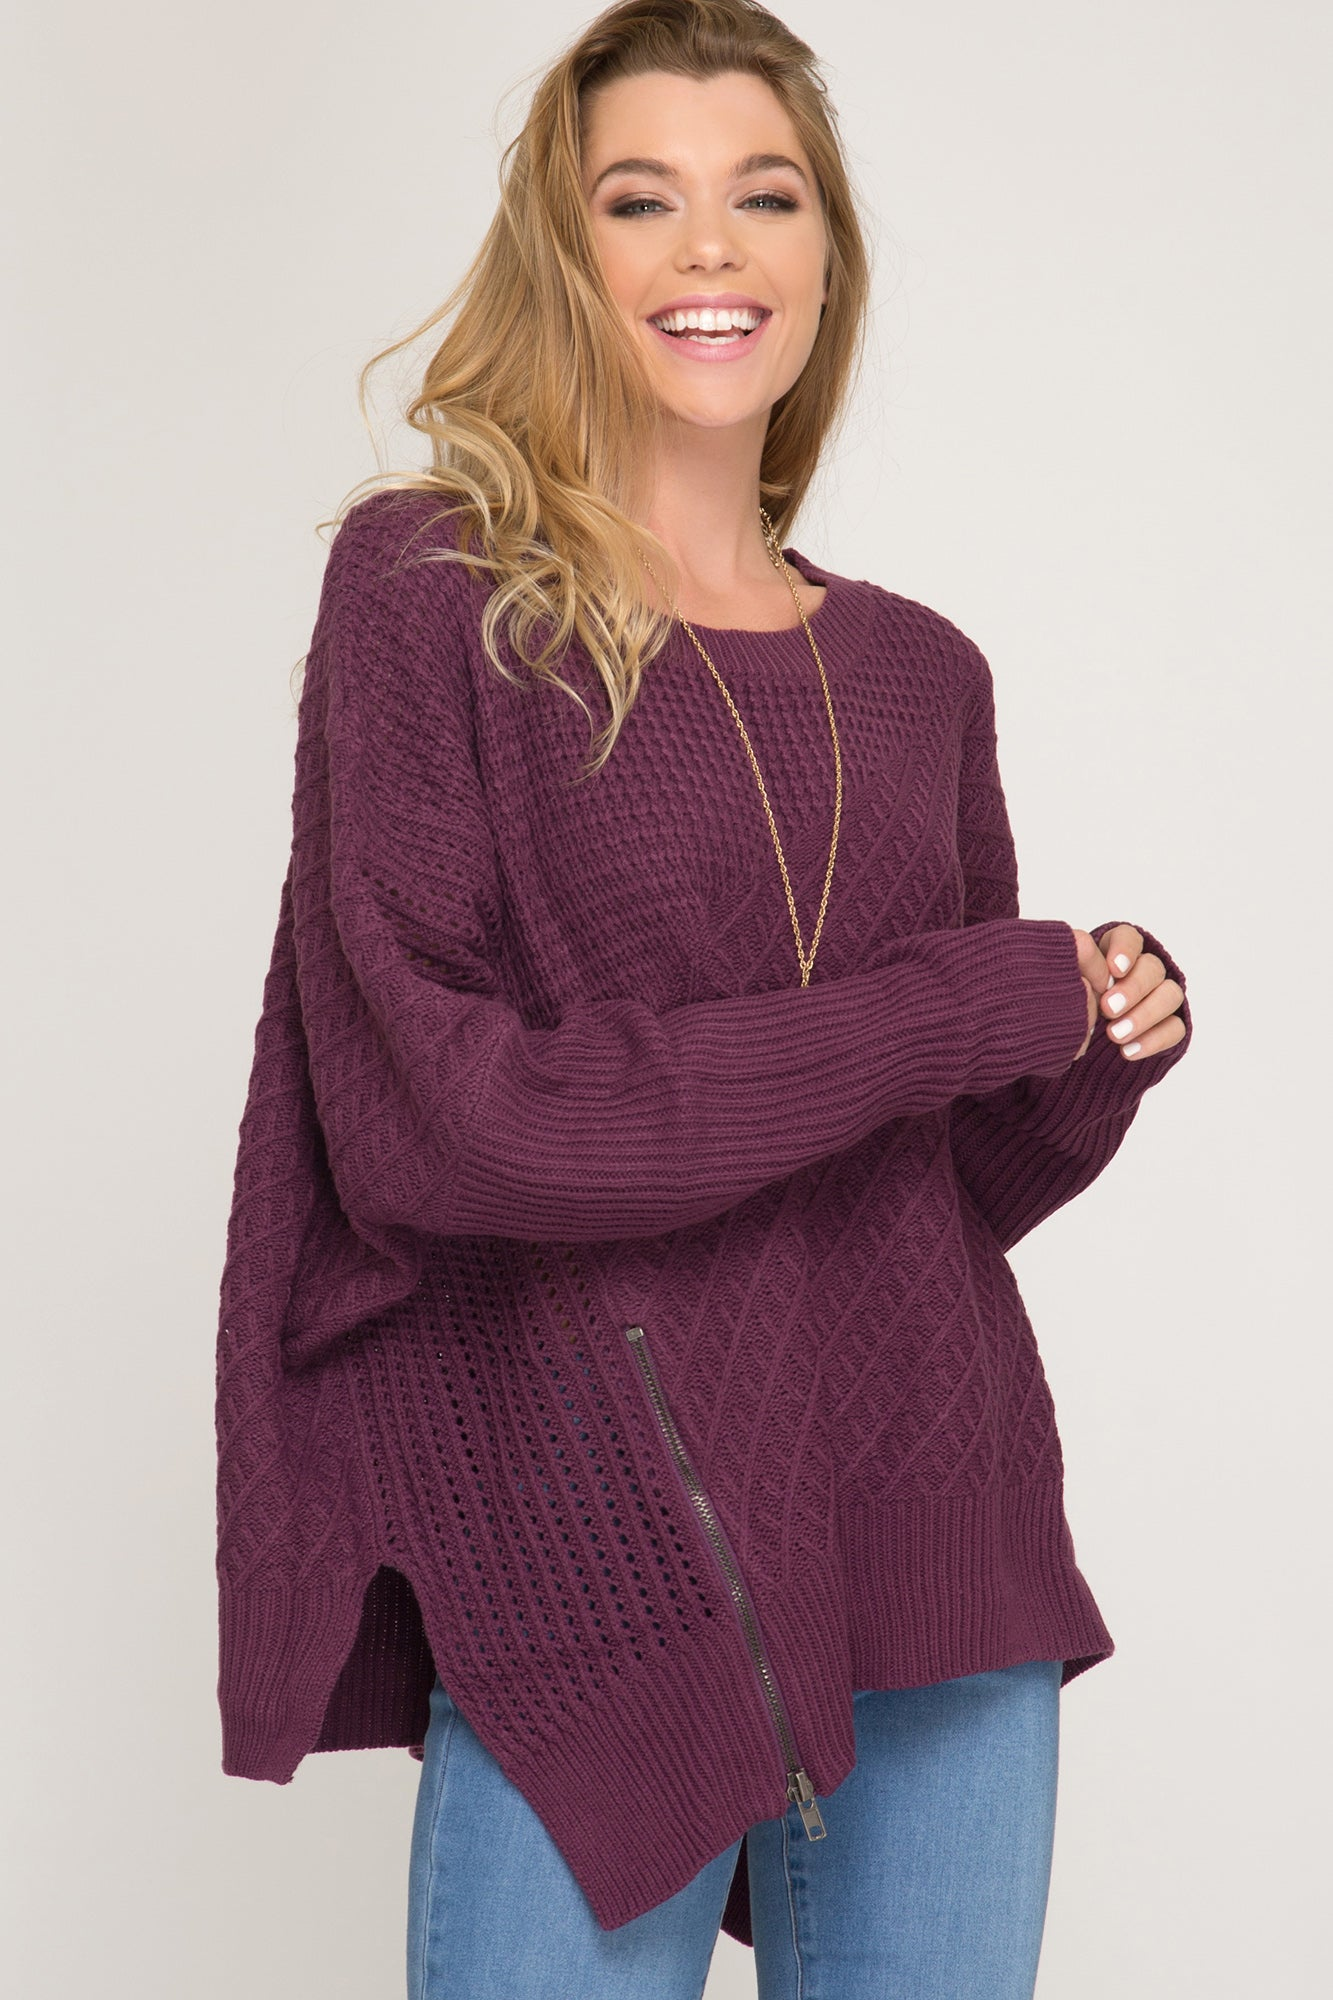 plum, chunky sweater, plus, curvy, one size, misses, she & sky, too qute boutique, www.tooquteboutique.com, new, fall, winter, cozy, warm, soft, knit